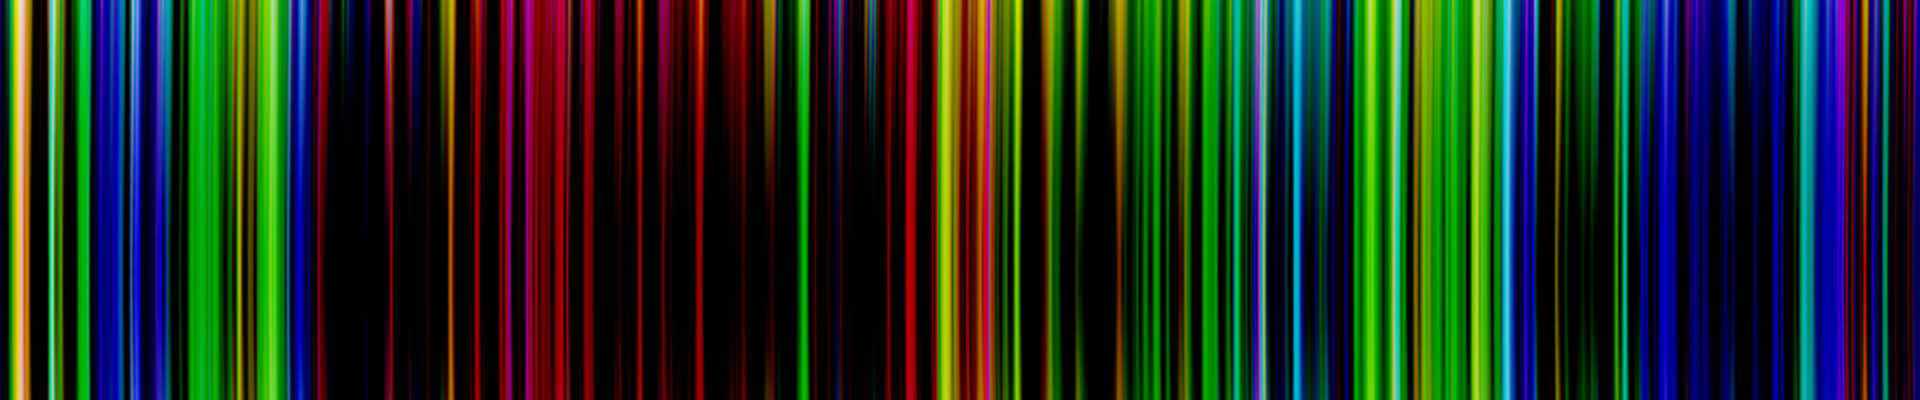 Electromagnetic color spectrum